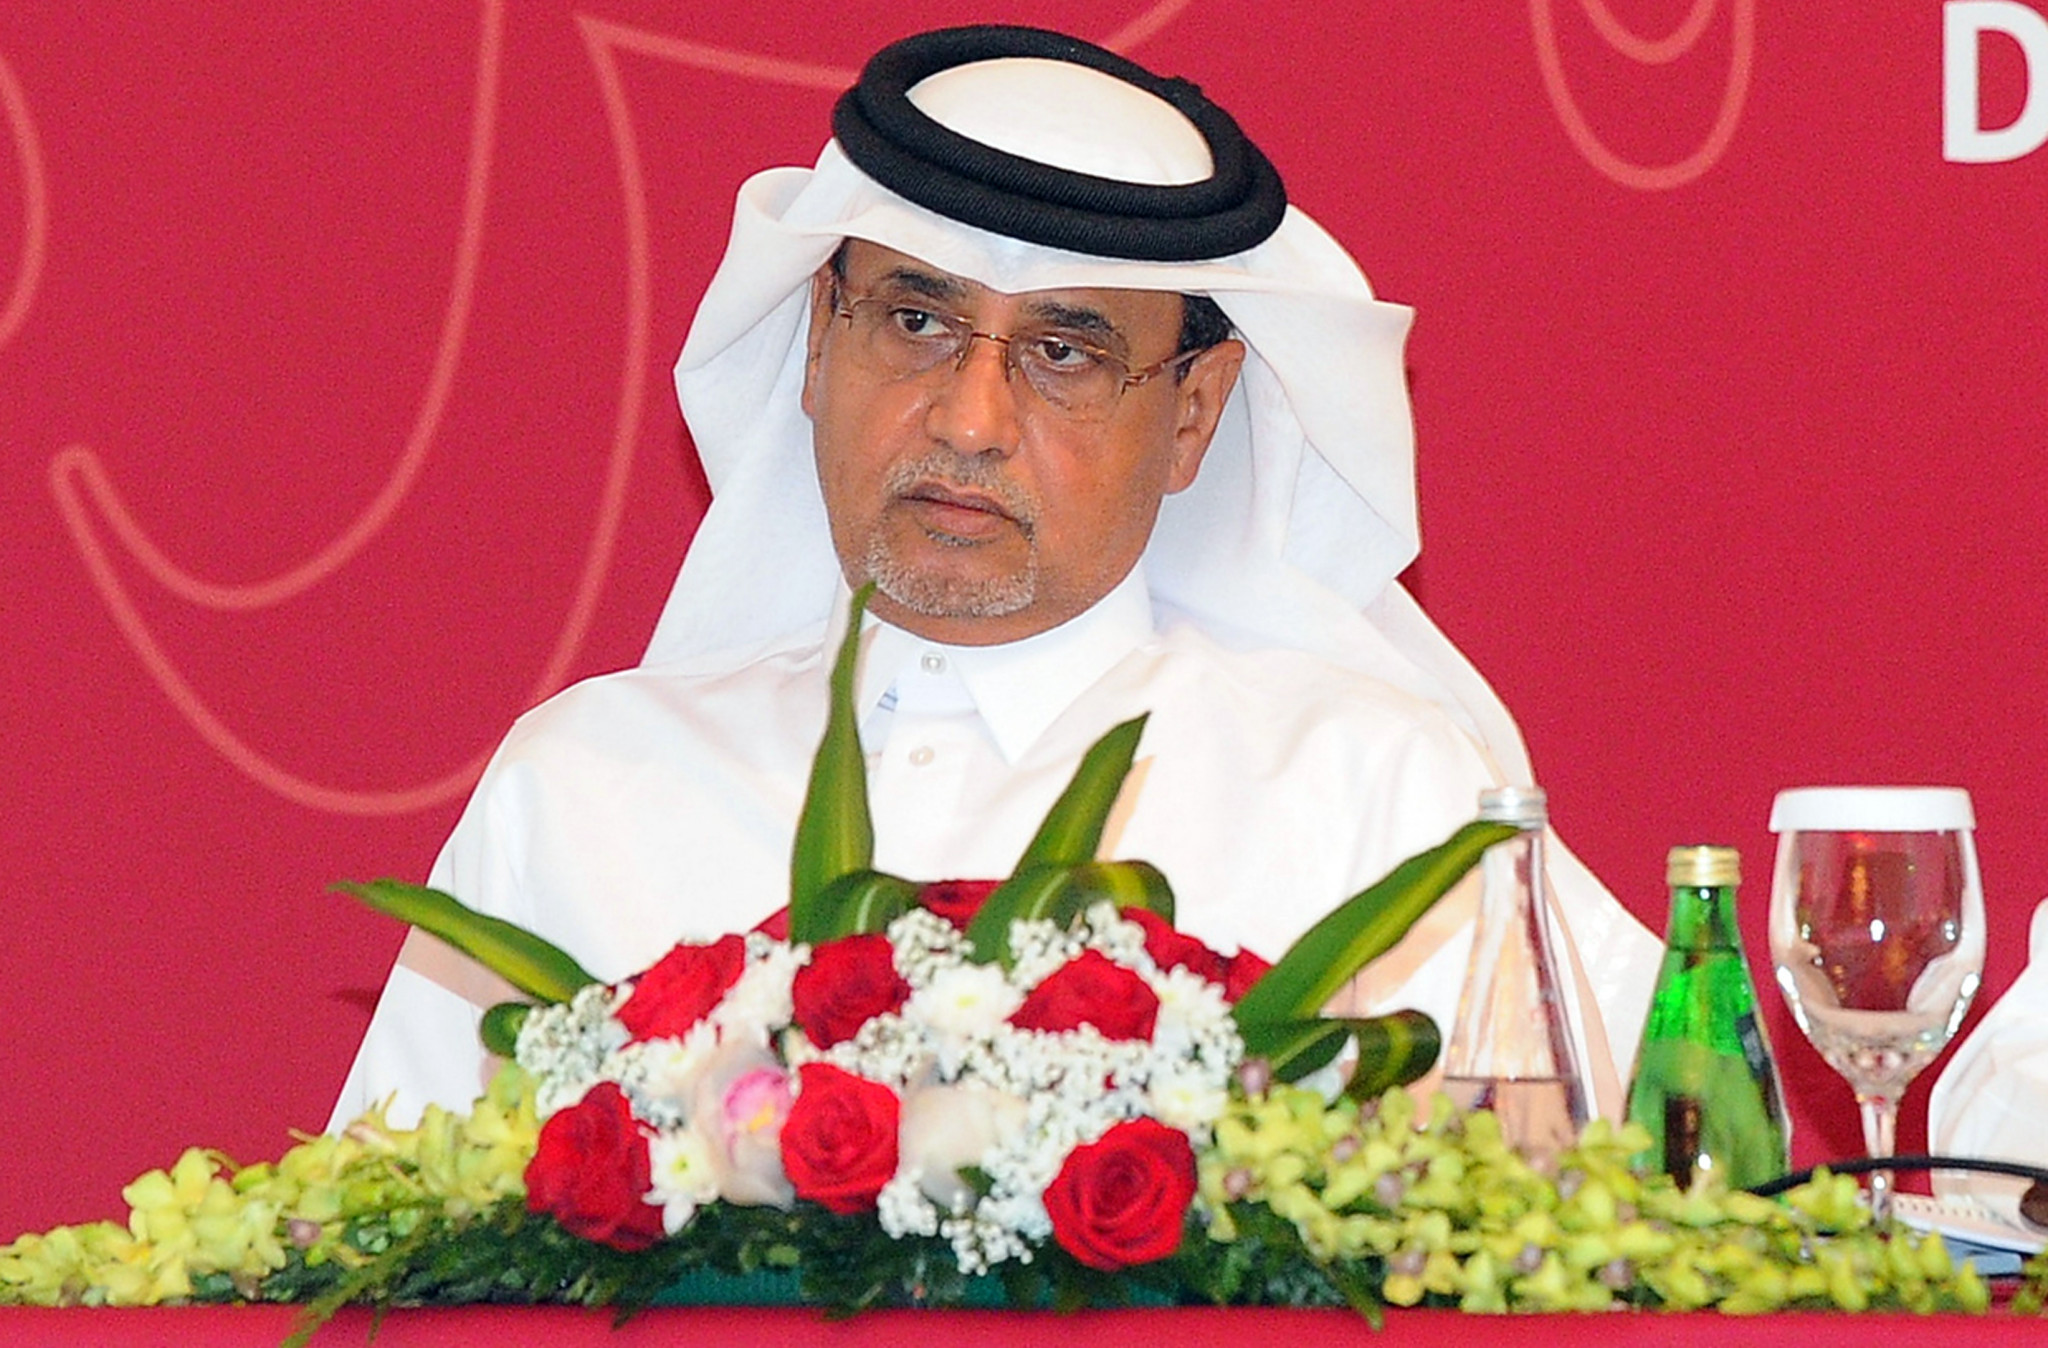 Qatari Saoud al-Mohannadi, vice-president of the AFC, was refused entry into the UAE before the Asian Cup tournament began ©Getty Images